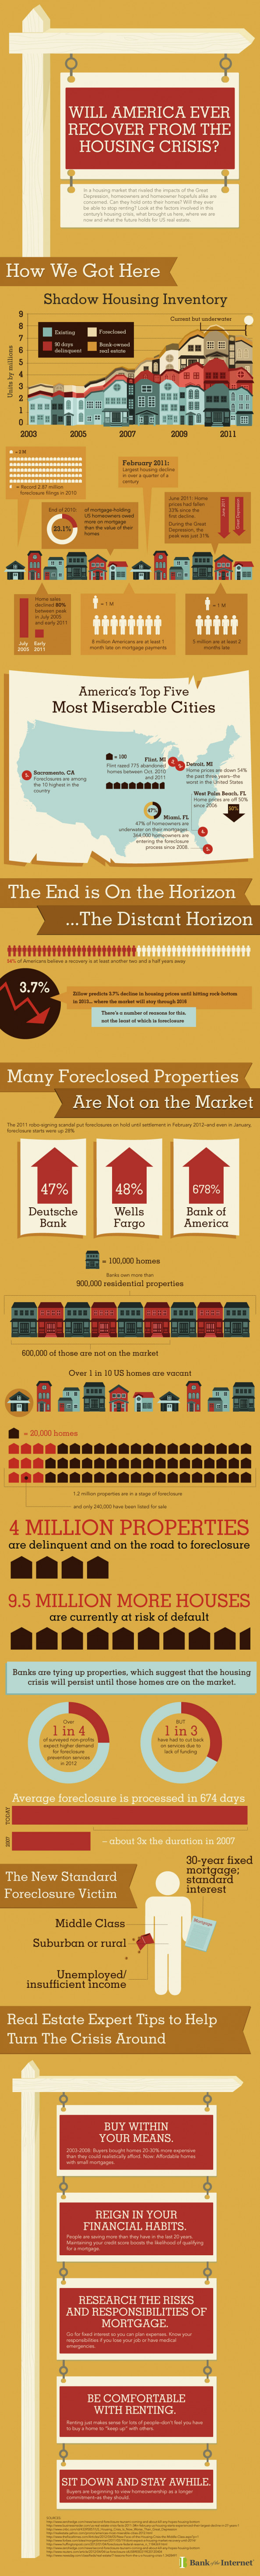 Will America Ever Recover From The Housing Crisis? Infographic